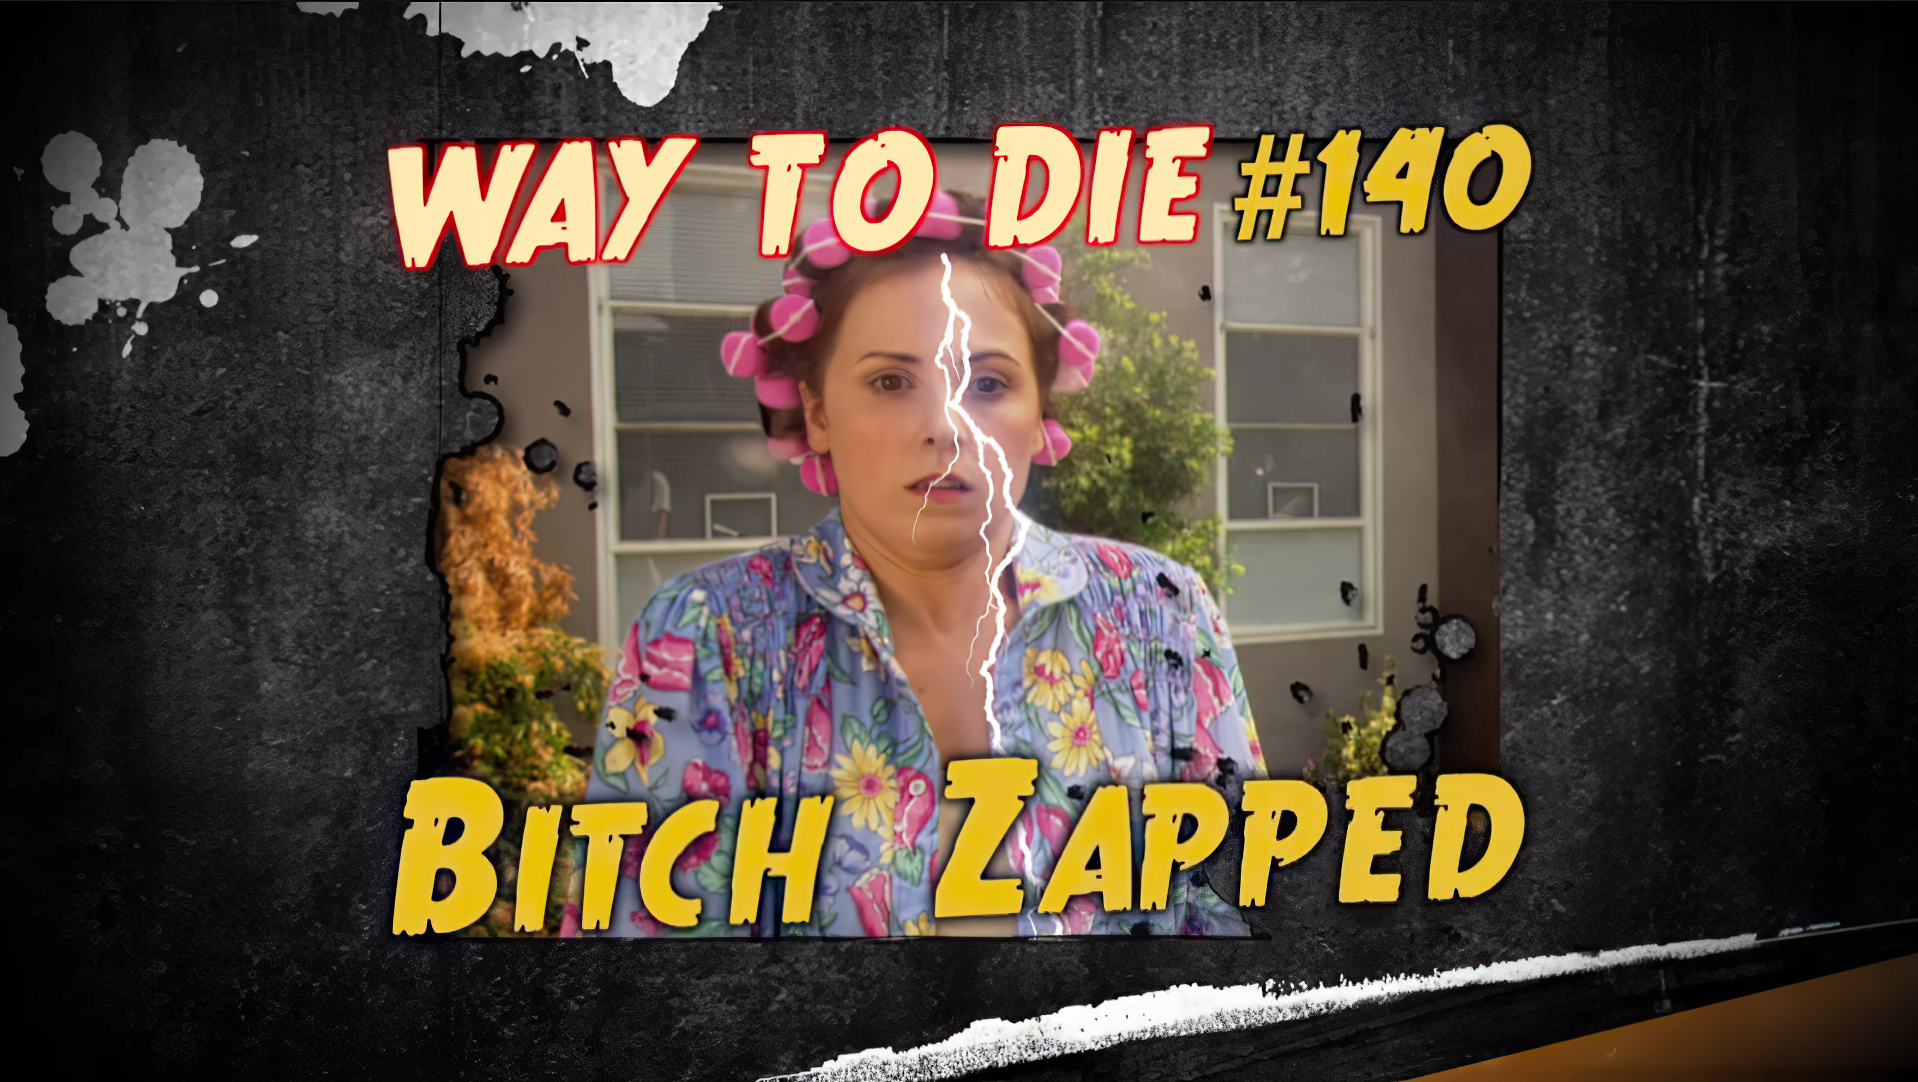 Bitch Zapped